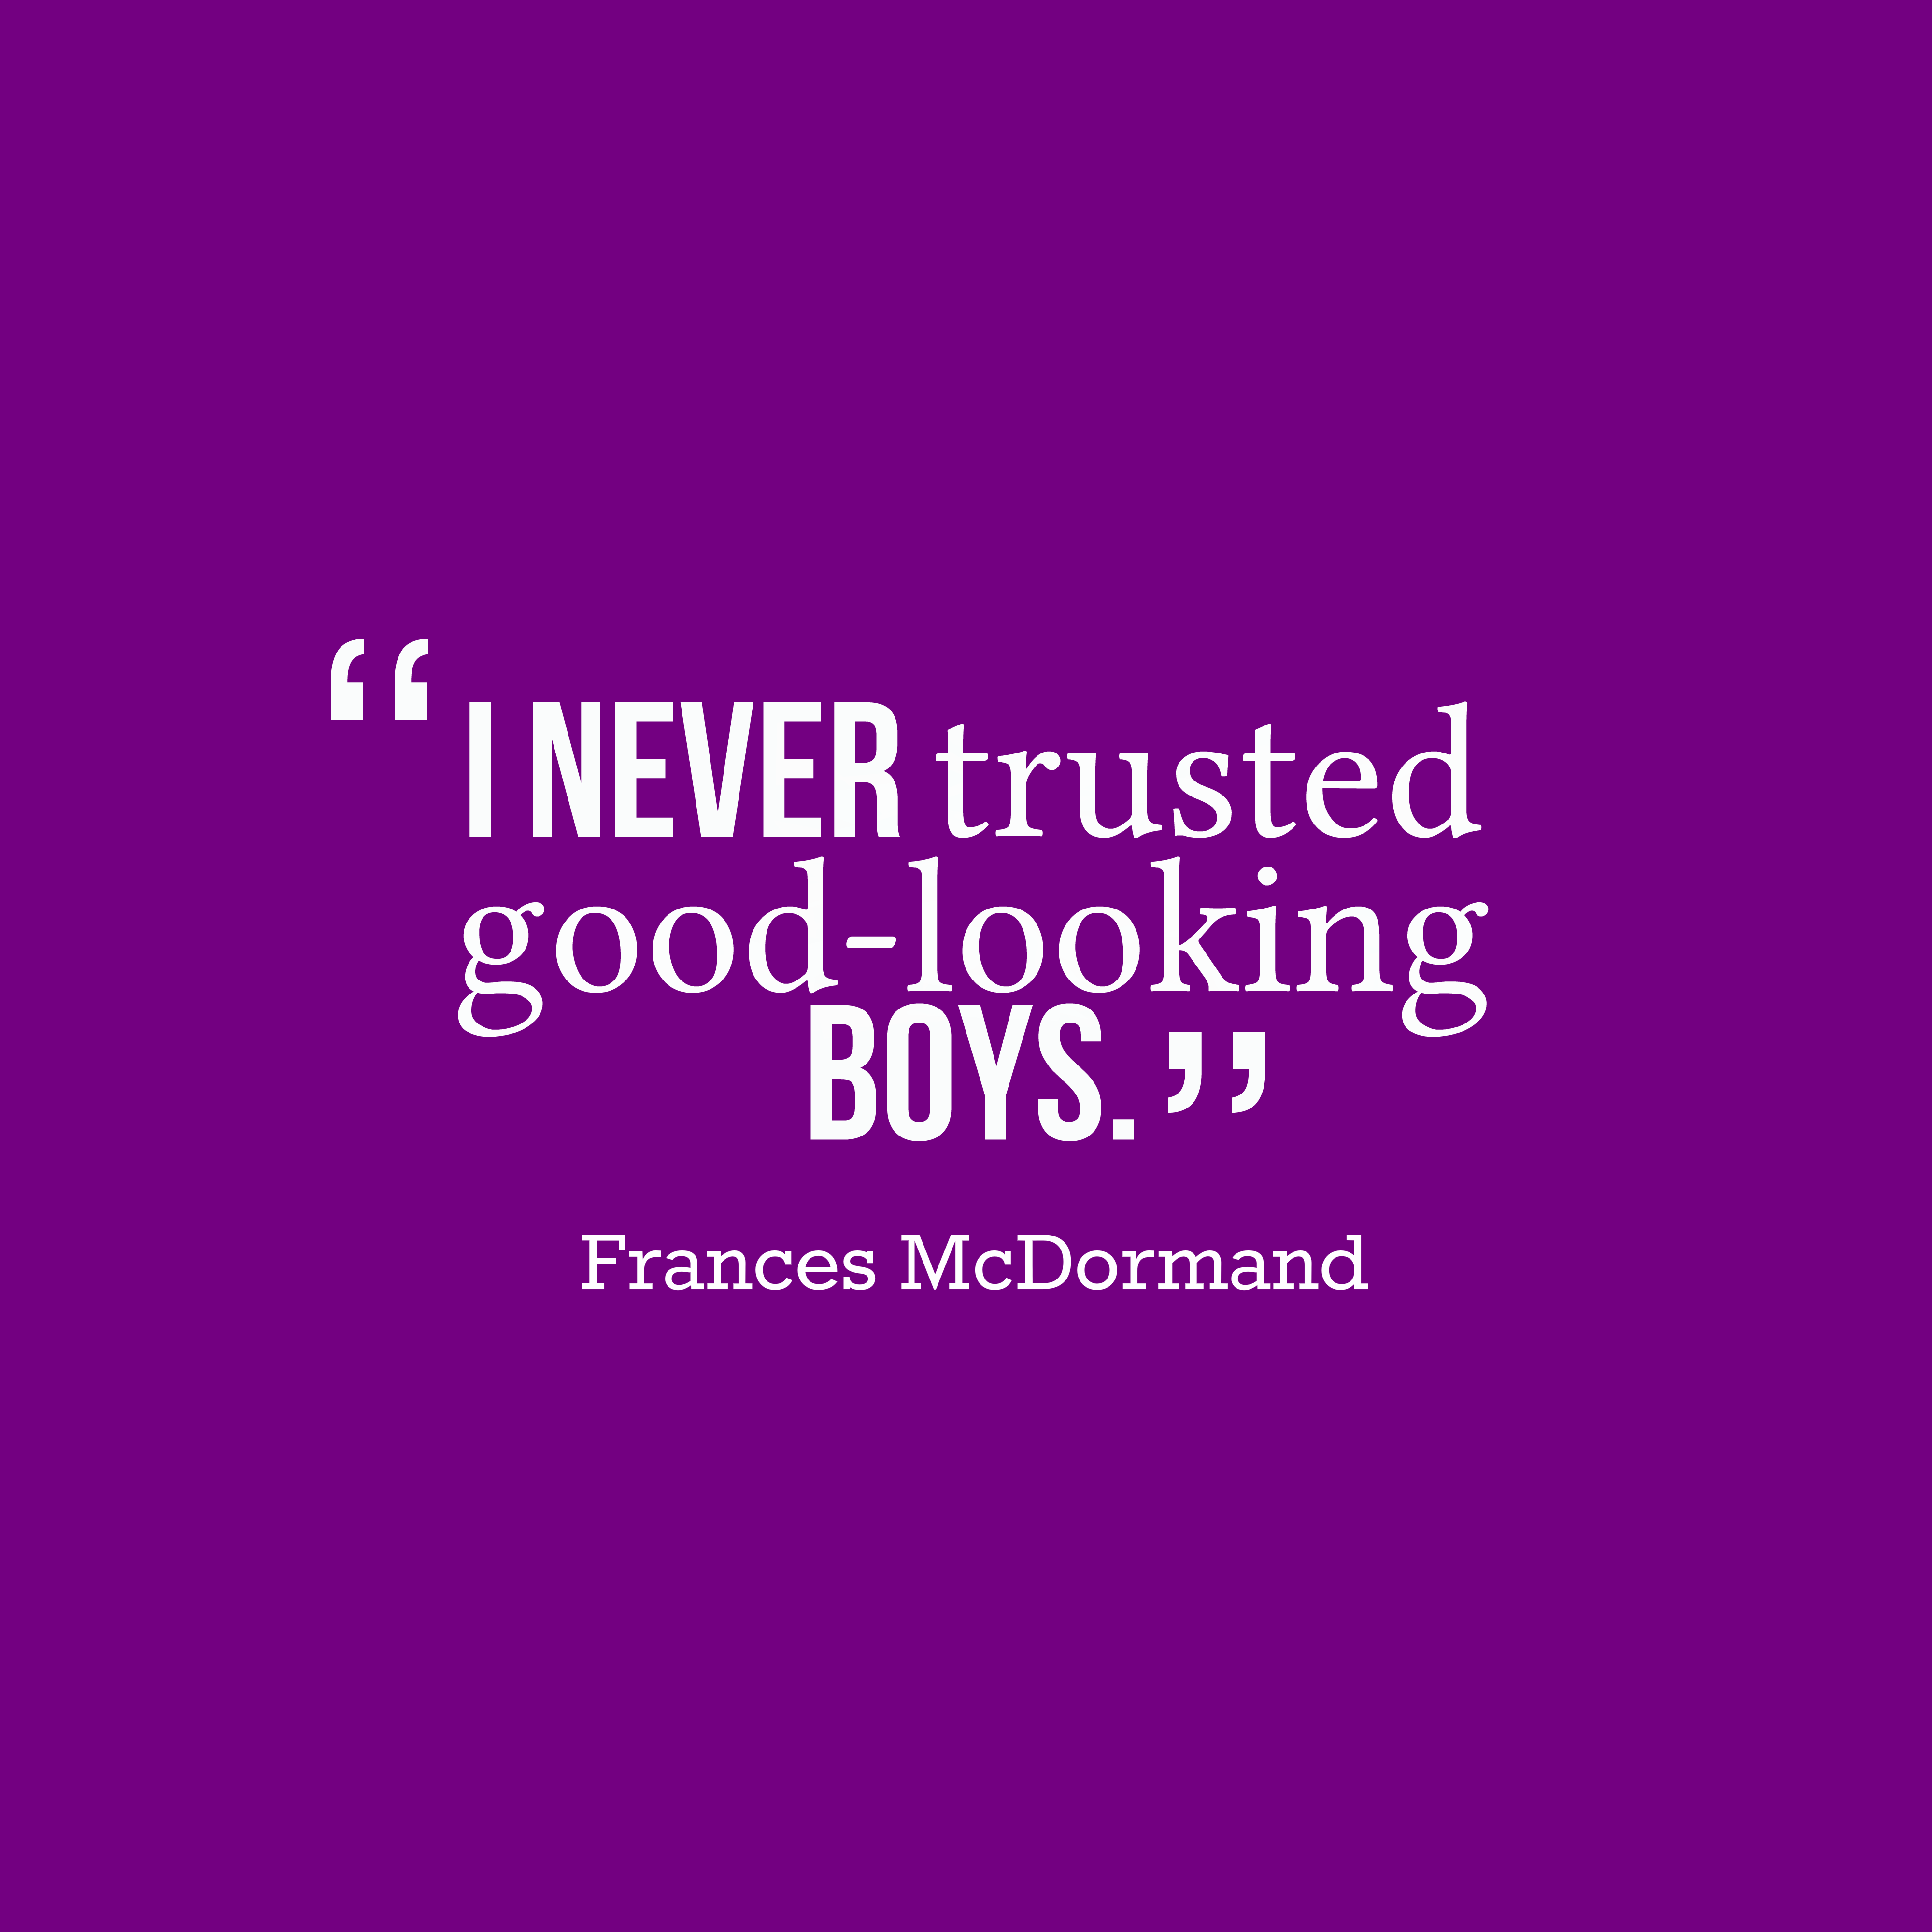 Quotes image of I never trusted good-looking boys.